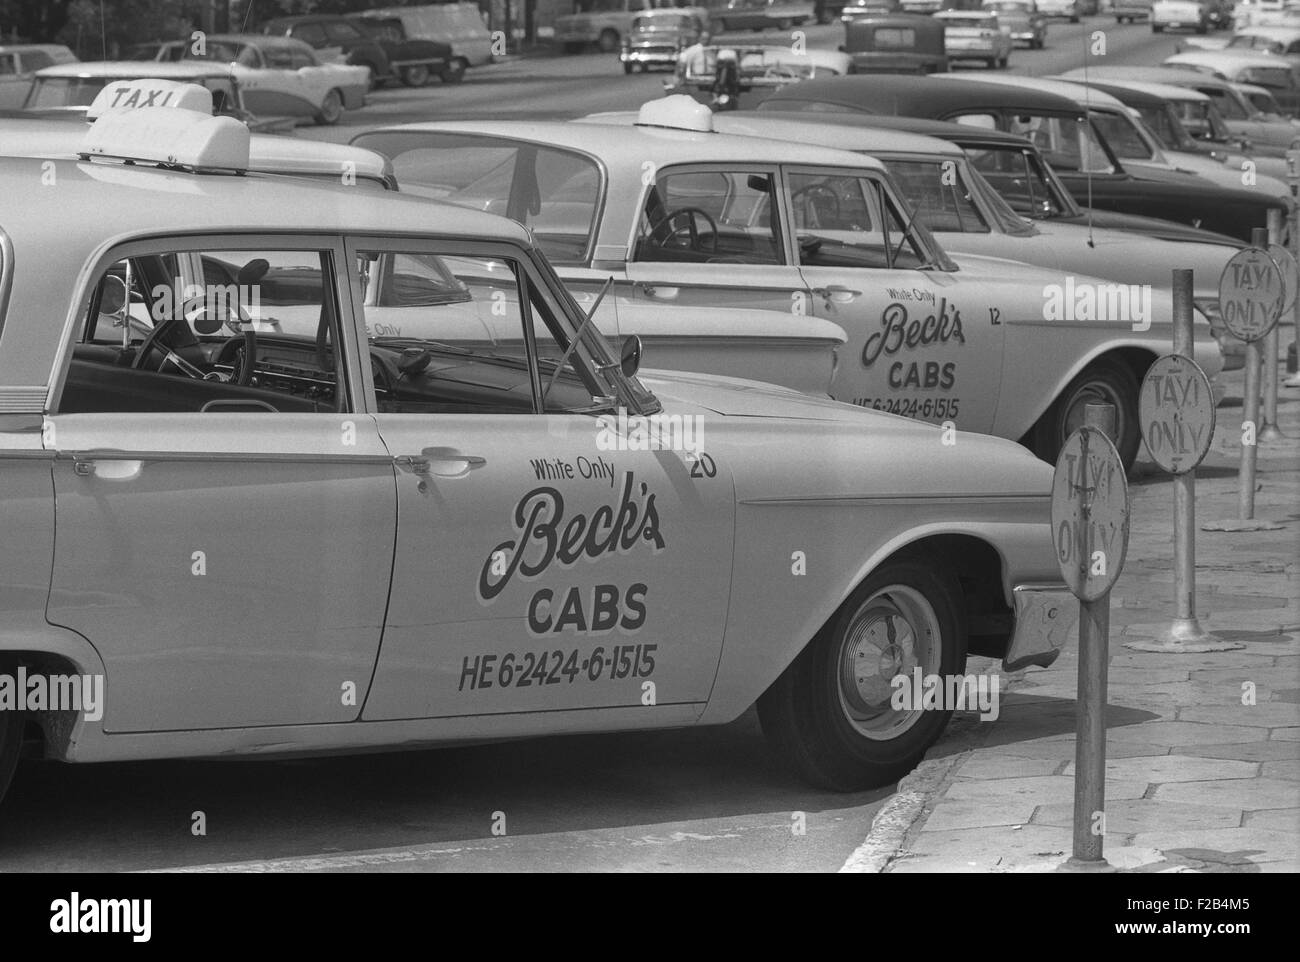 Segregated taxi cabs with sign 'White only, Becks cabs' on side door, Albany, Georgia. Aug. 18, 1962. - - Stock Image